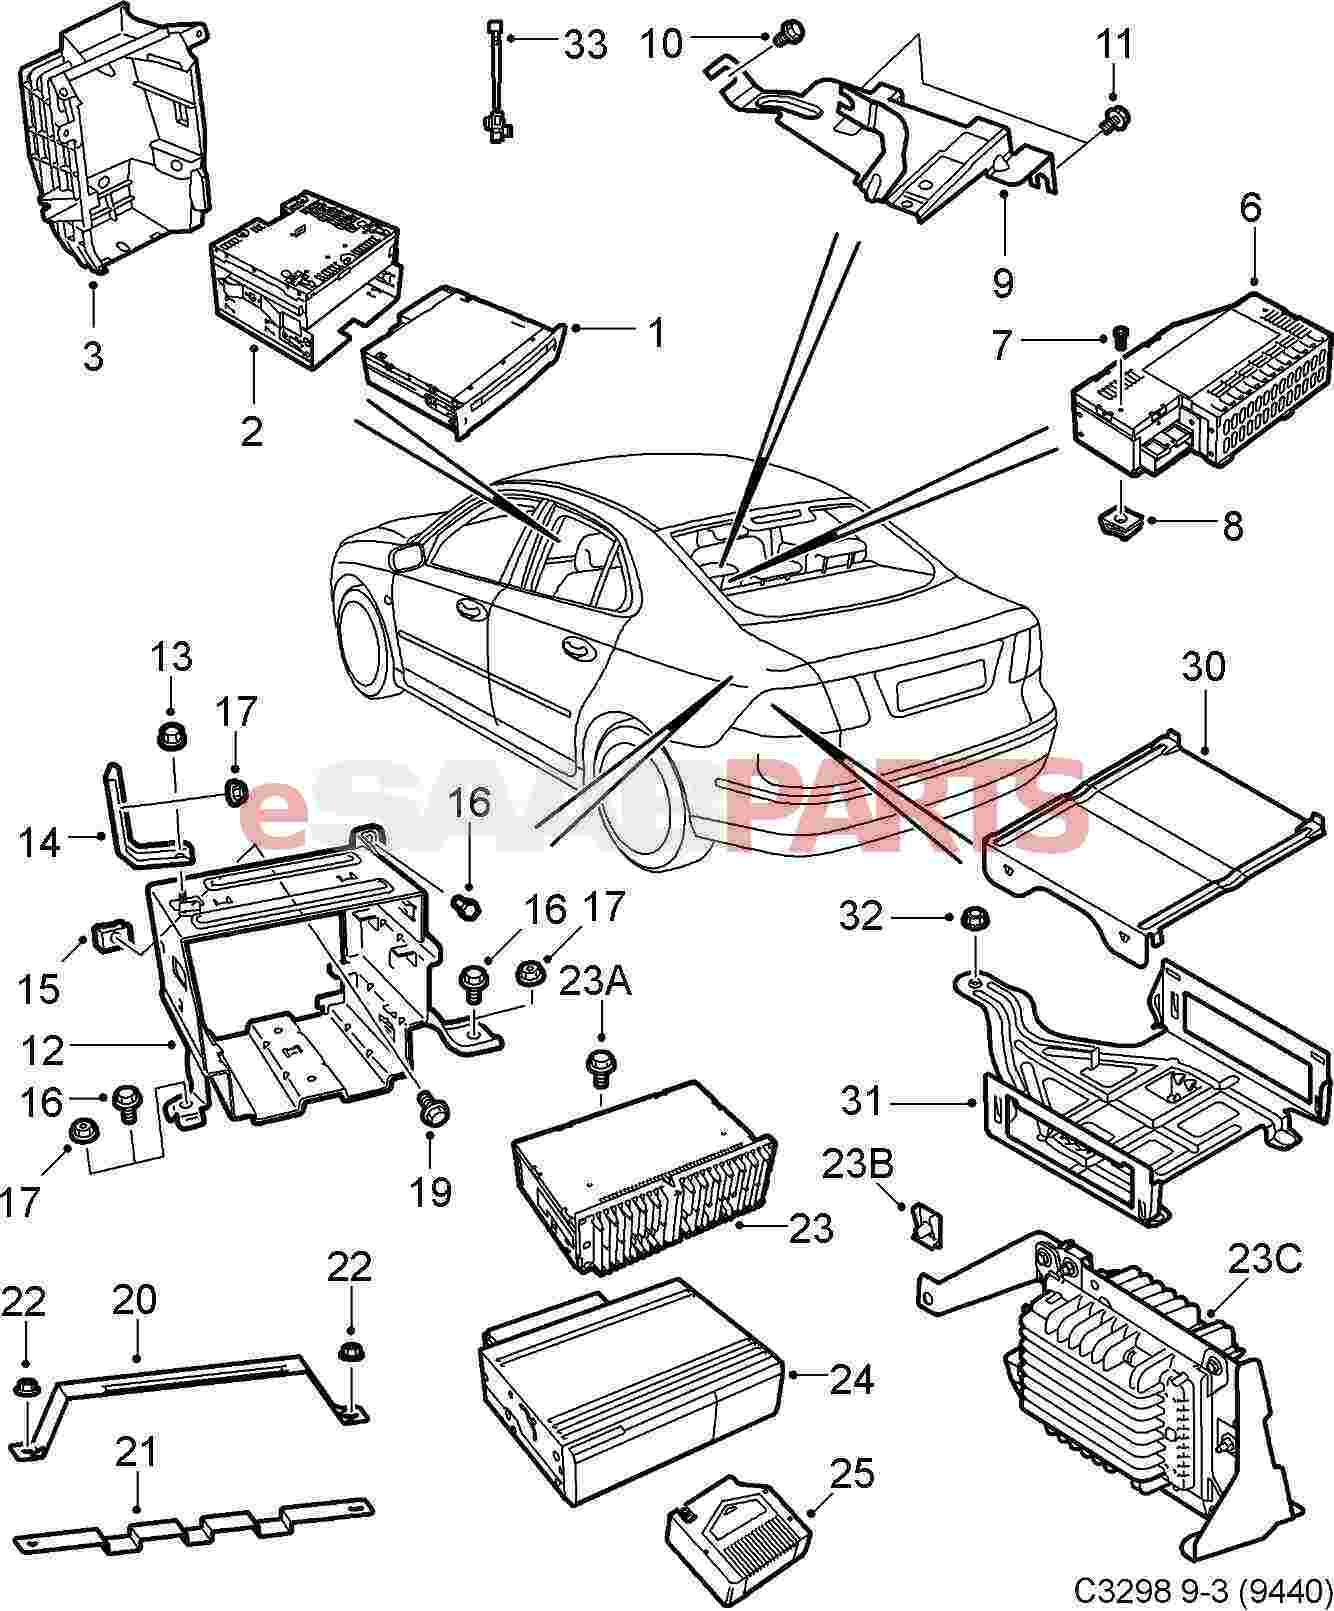 Heat York Diagram N Wiring Pump Ahc1606a Guide And Troubleshooting Thermostat On Diagrams Car Rh 13 Shareplm De